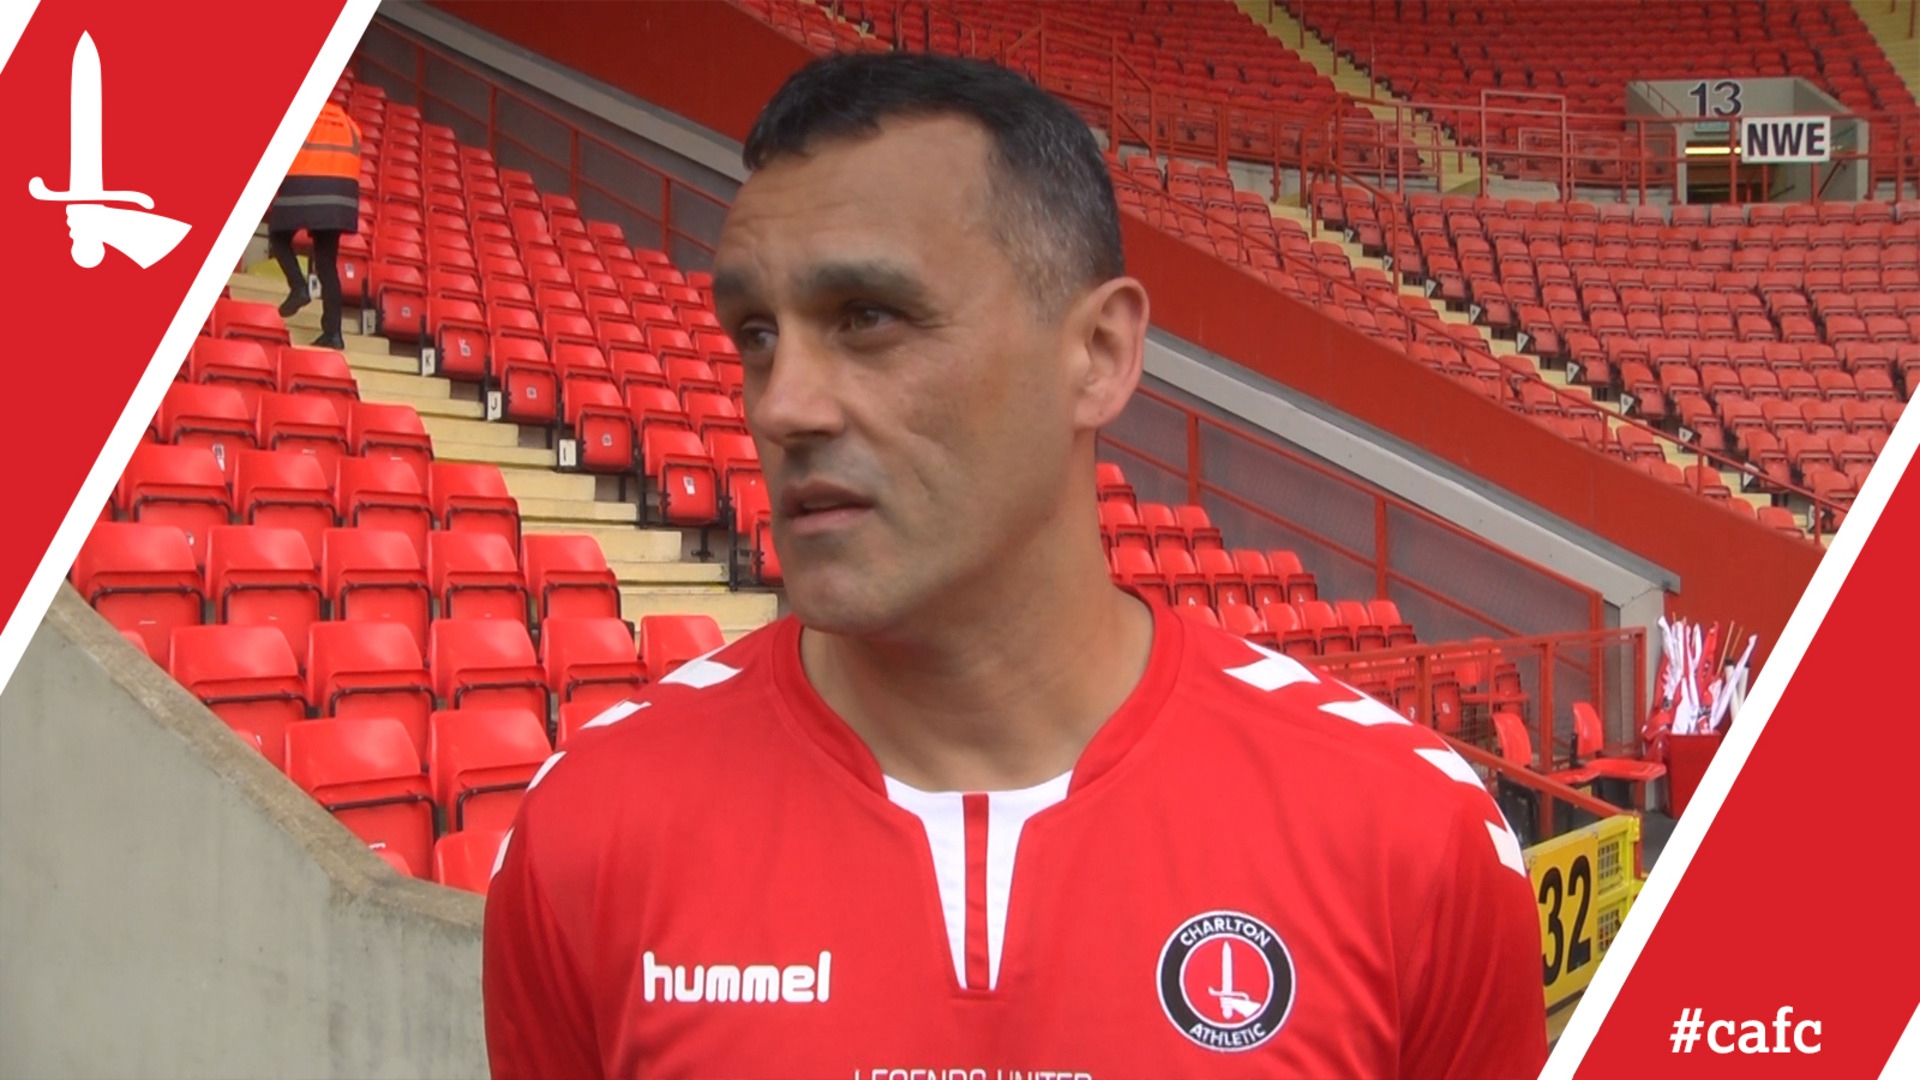 LEGENDS UNITED | Clive Mendonca amazed with fans reaction